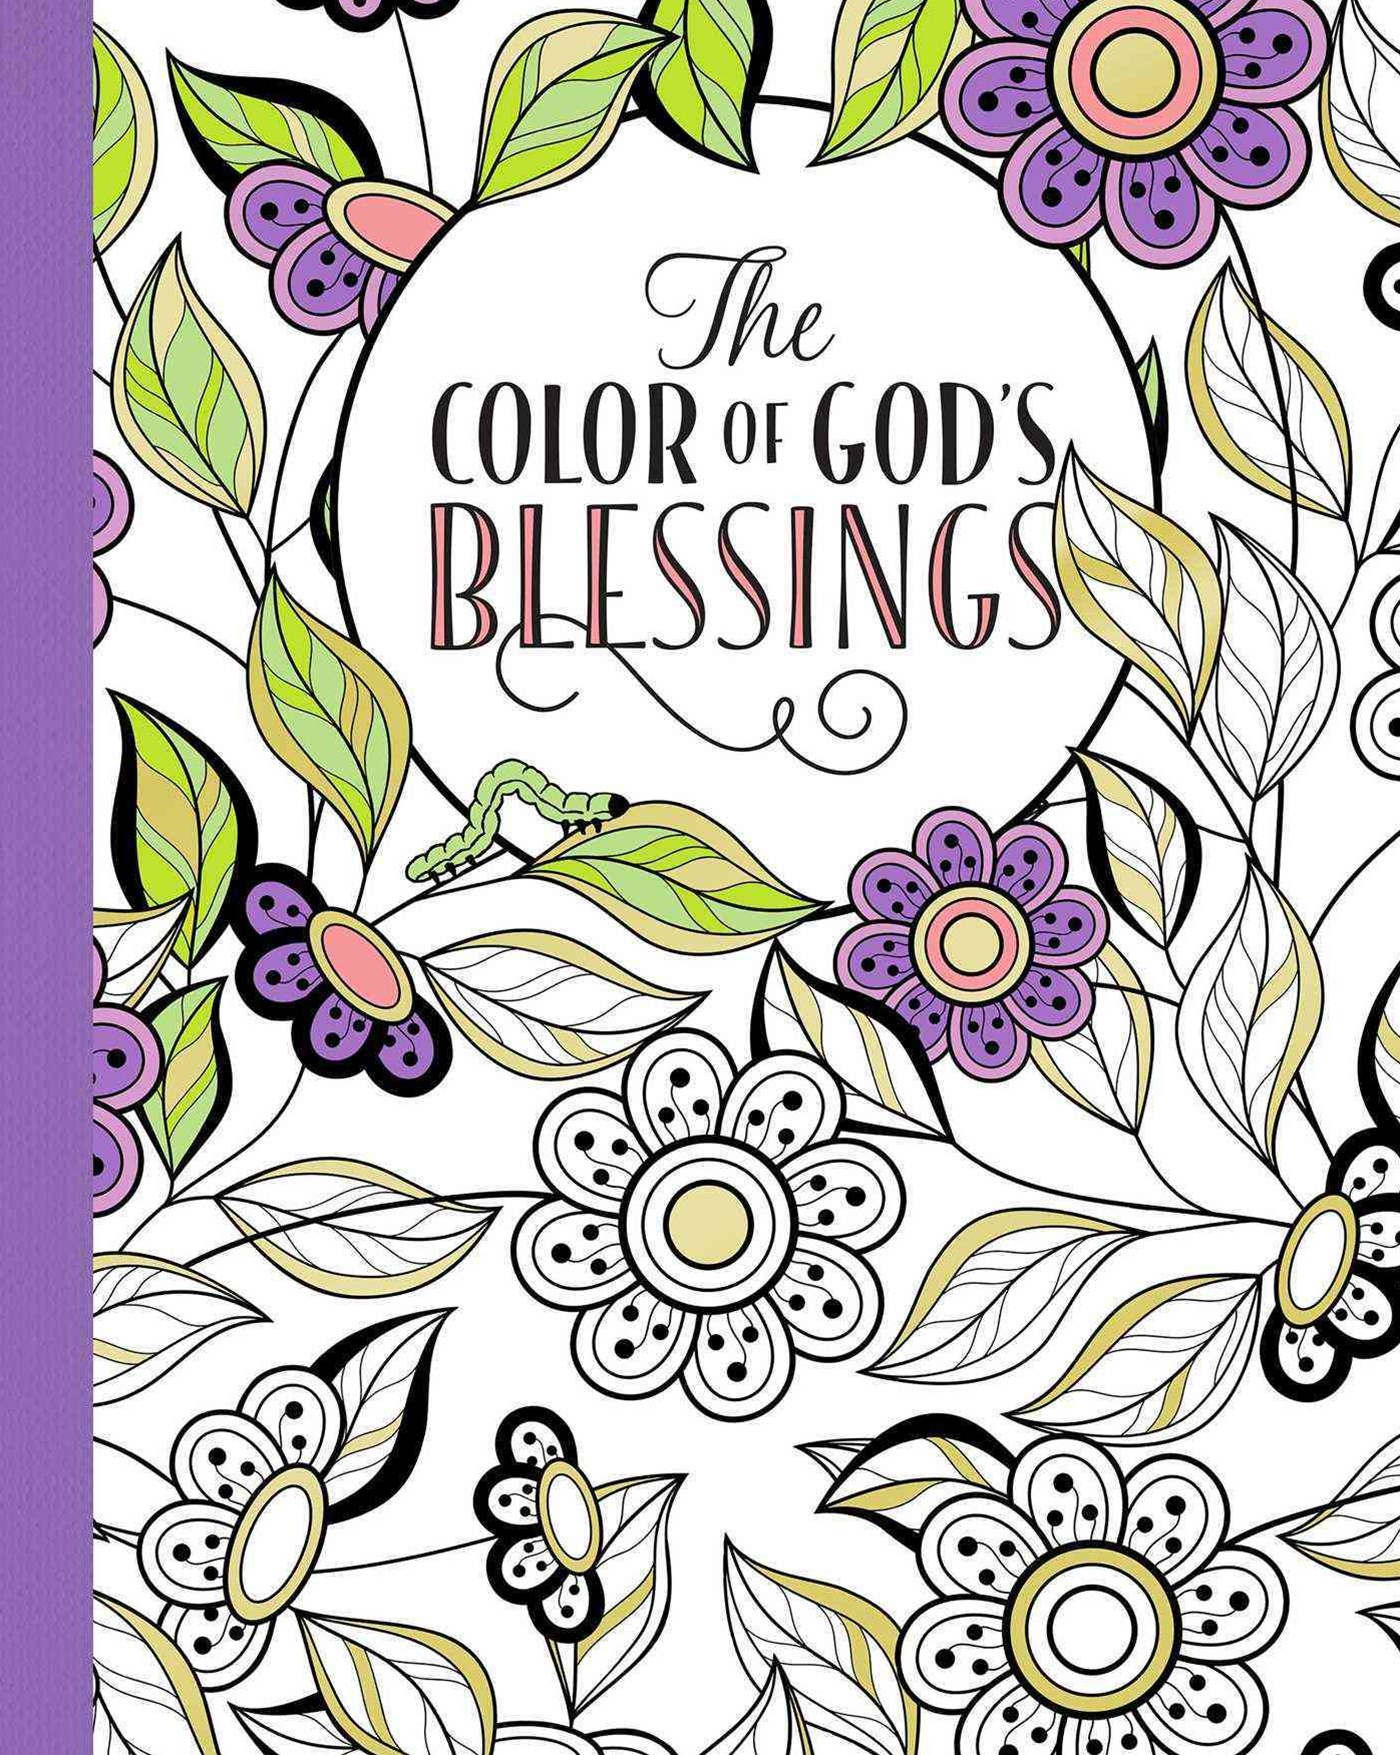 Colour of God's Blessings